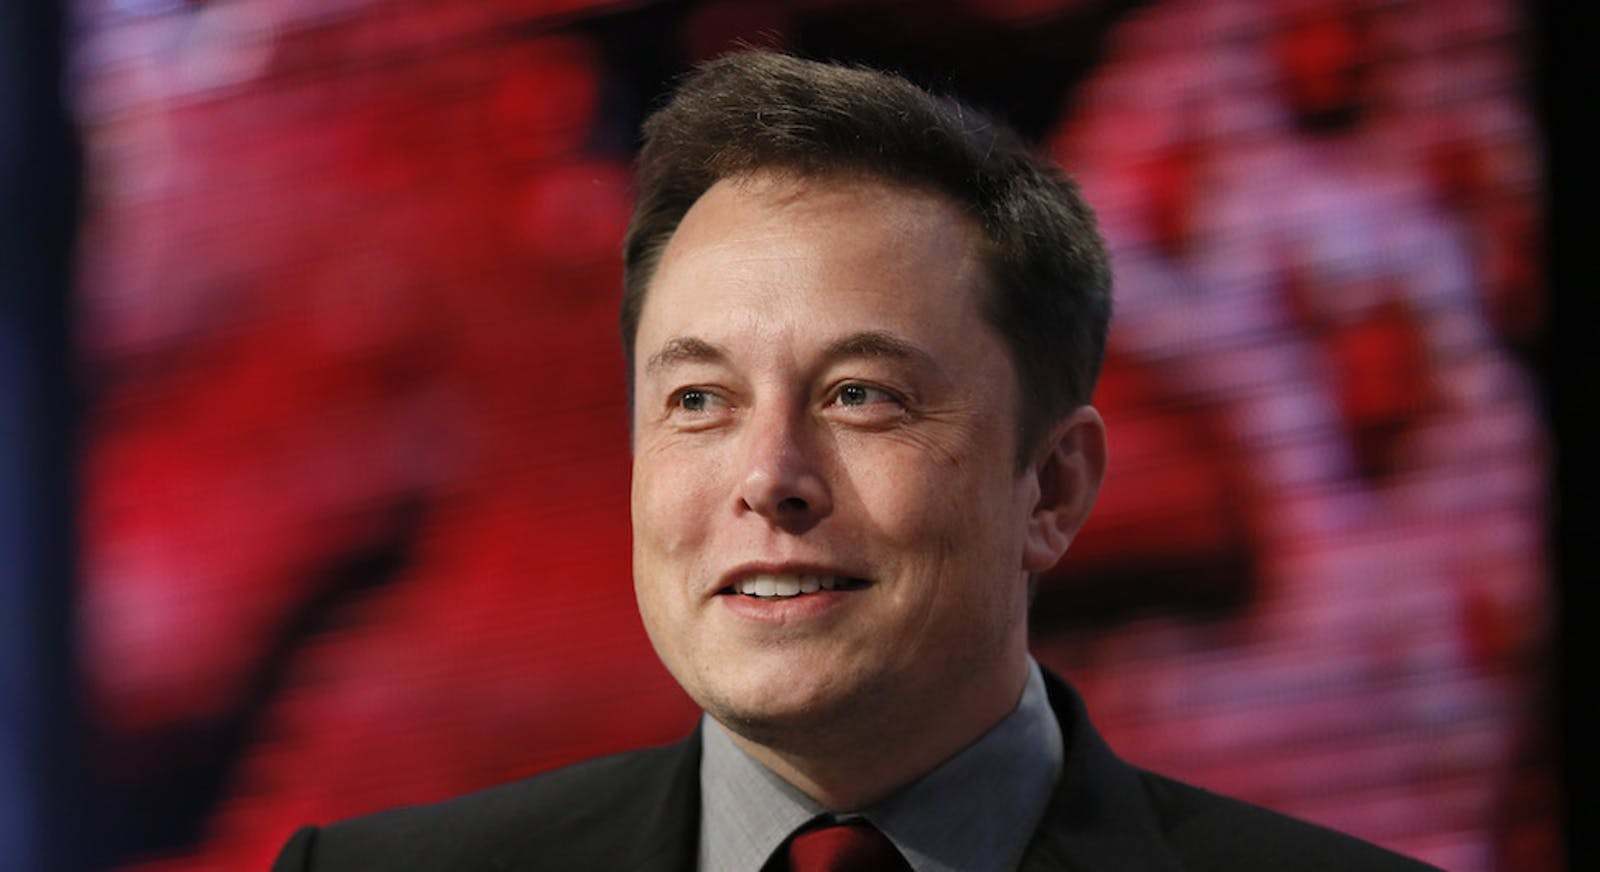 SpaceX CEO Elon Musk. Photo by Associated Press.